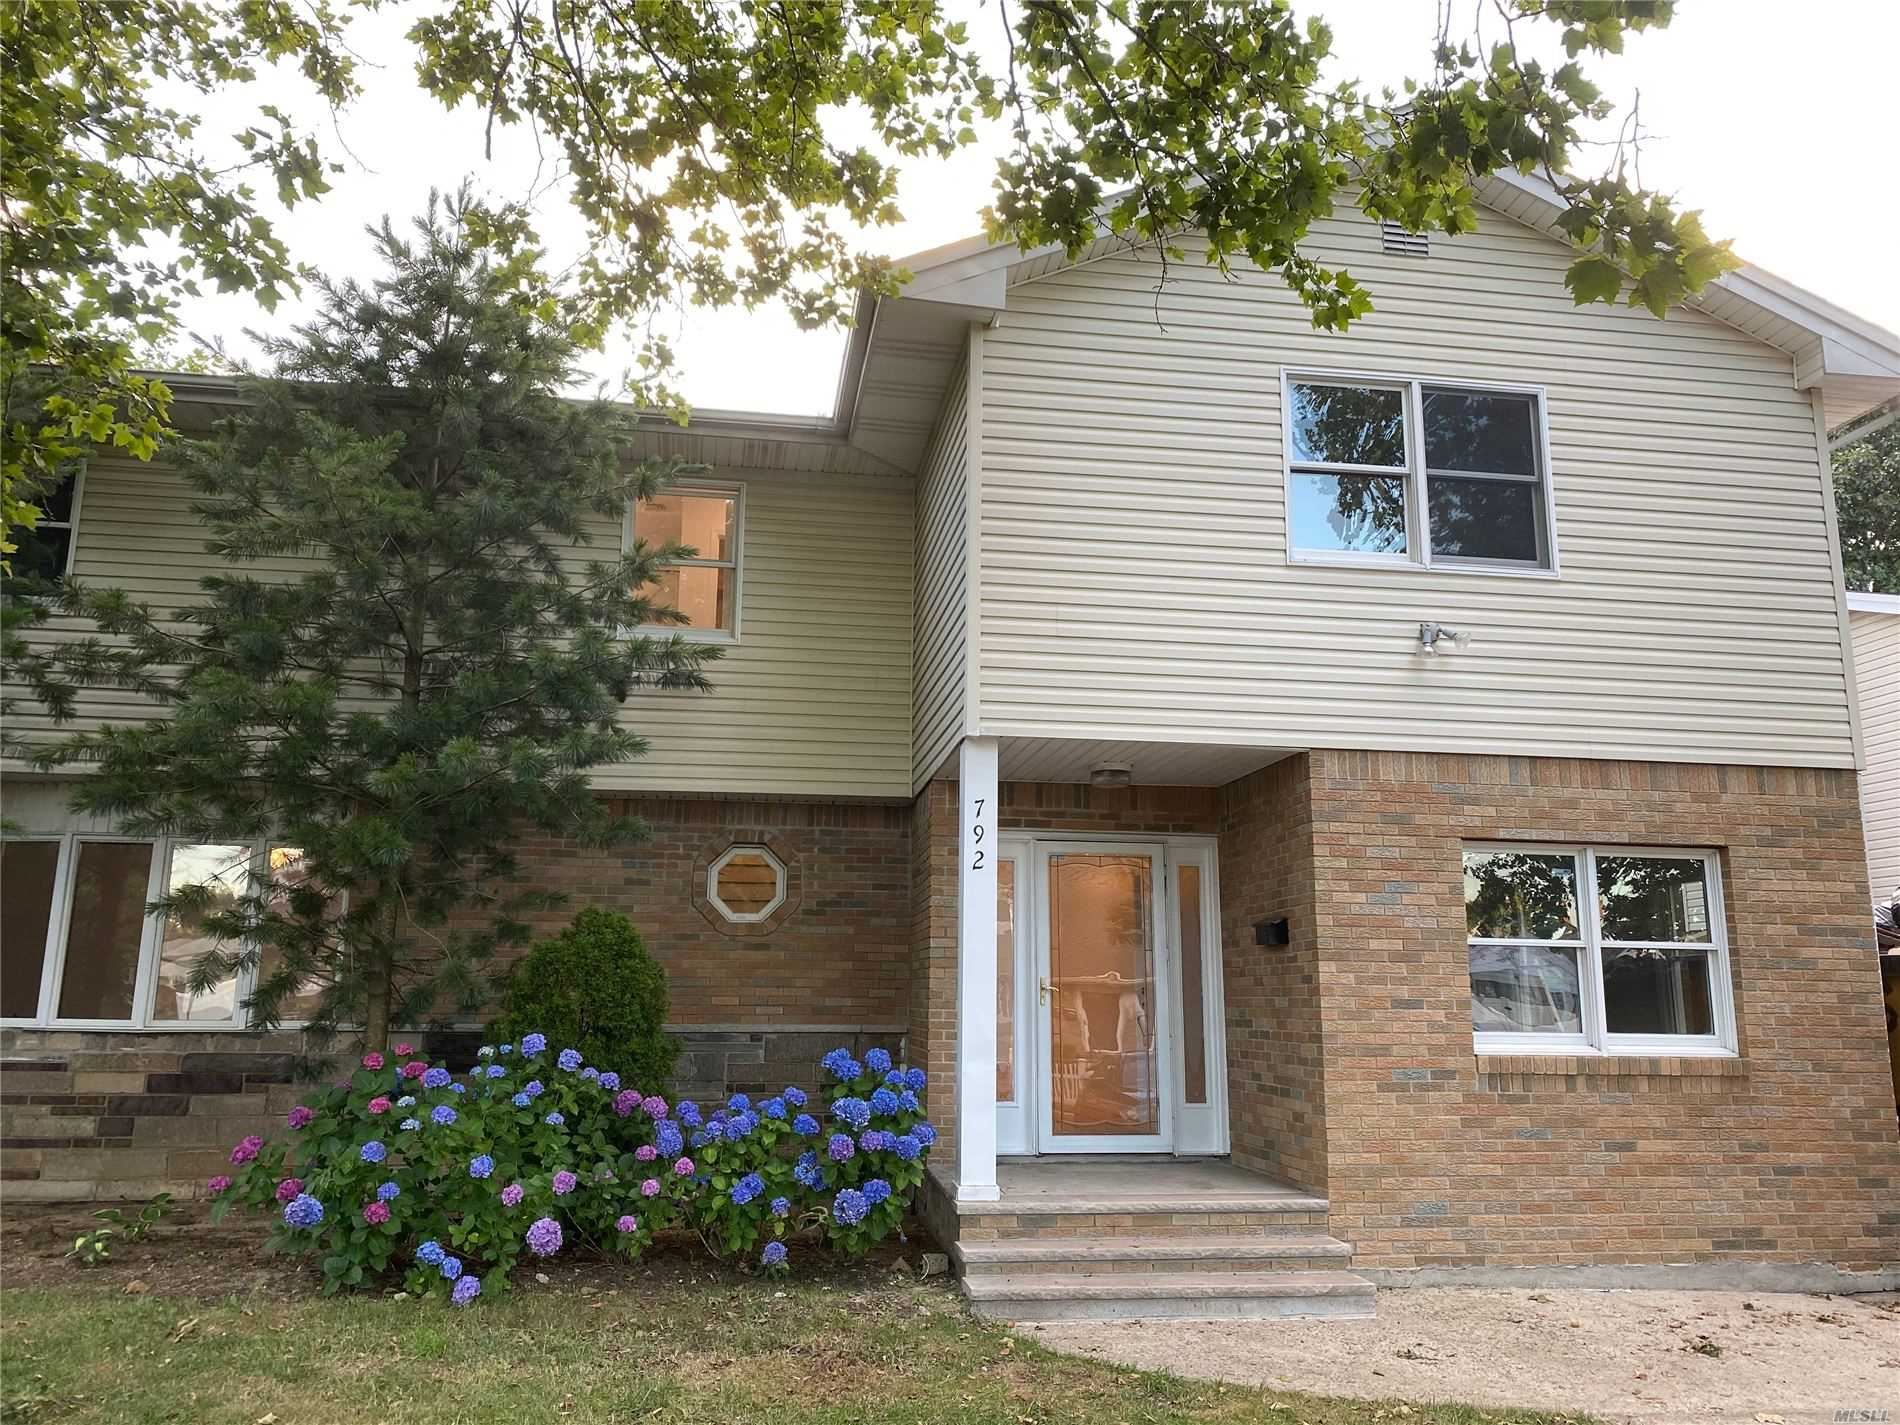 792 Maple Pl, W. Hempstead, NY 11552 - MLS#: 3197313